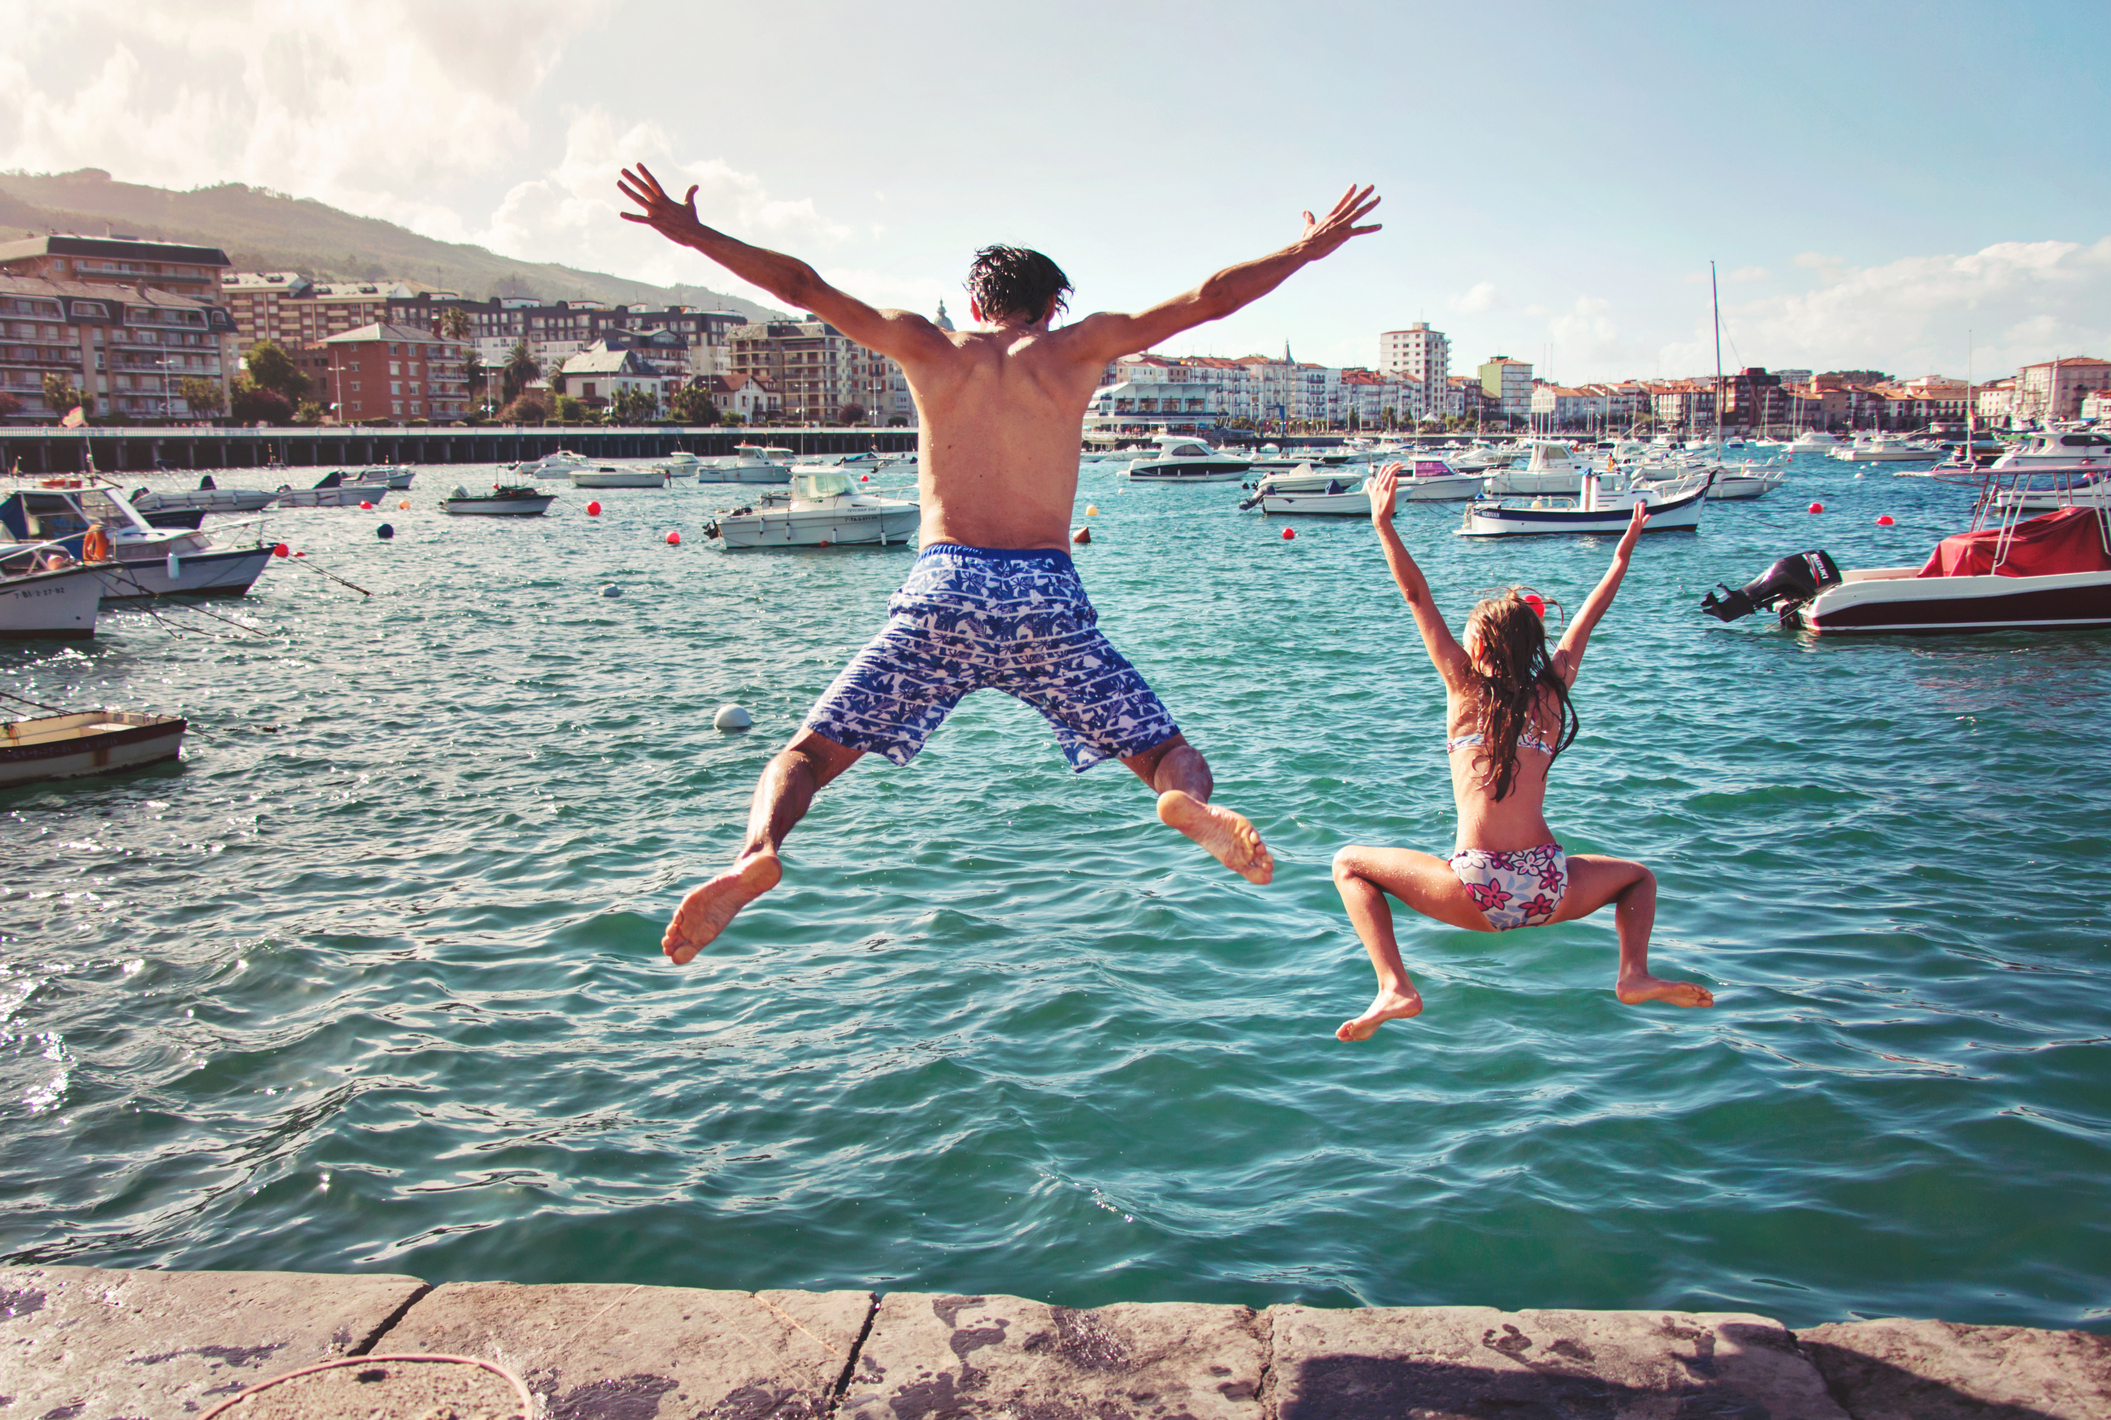 A man and a child jumping off a dock into the ocean.